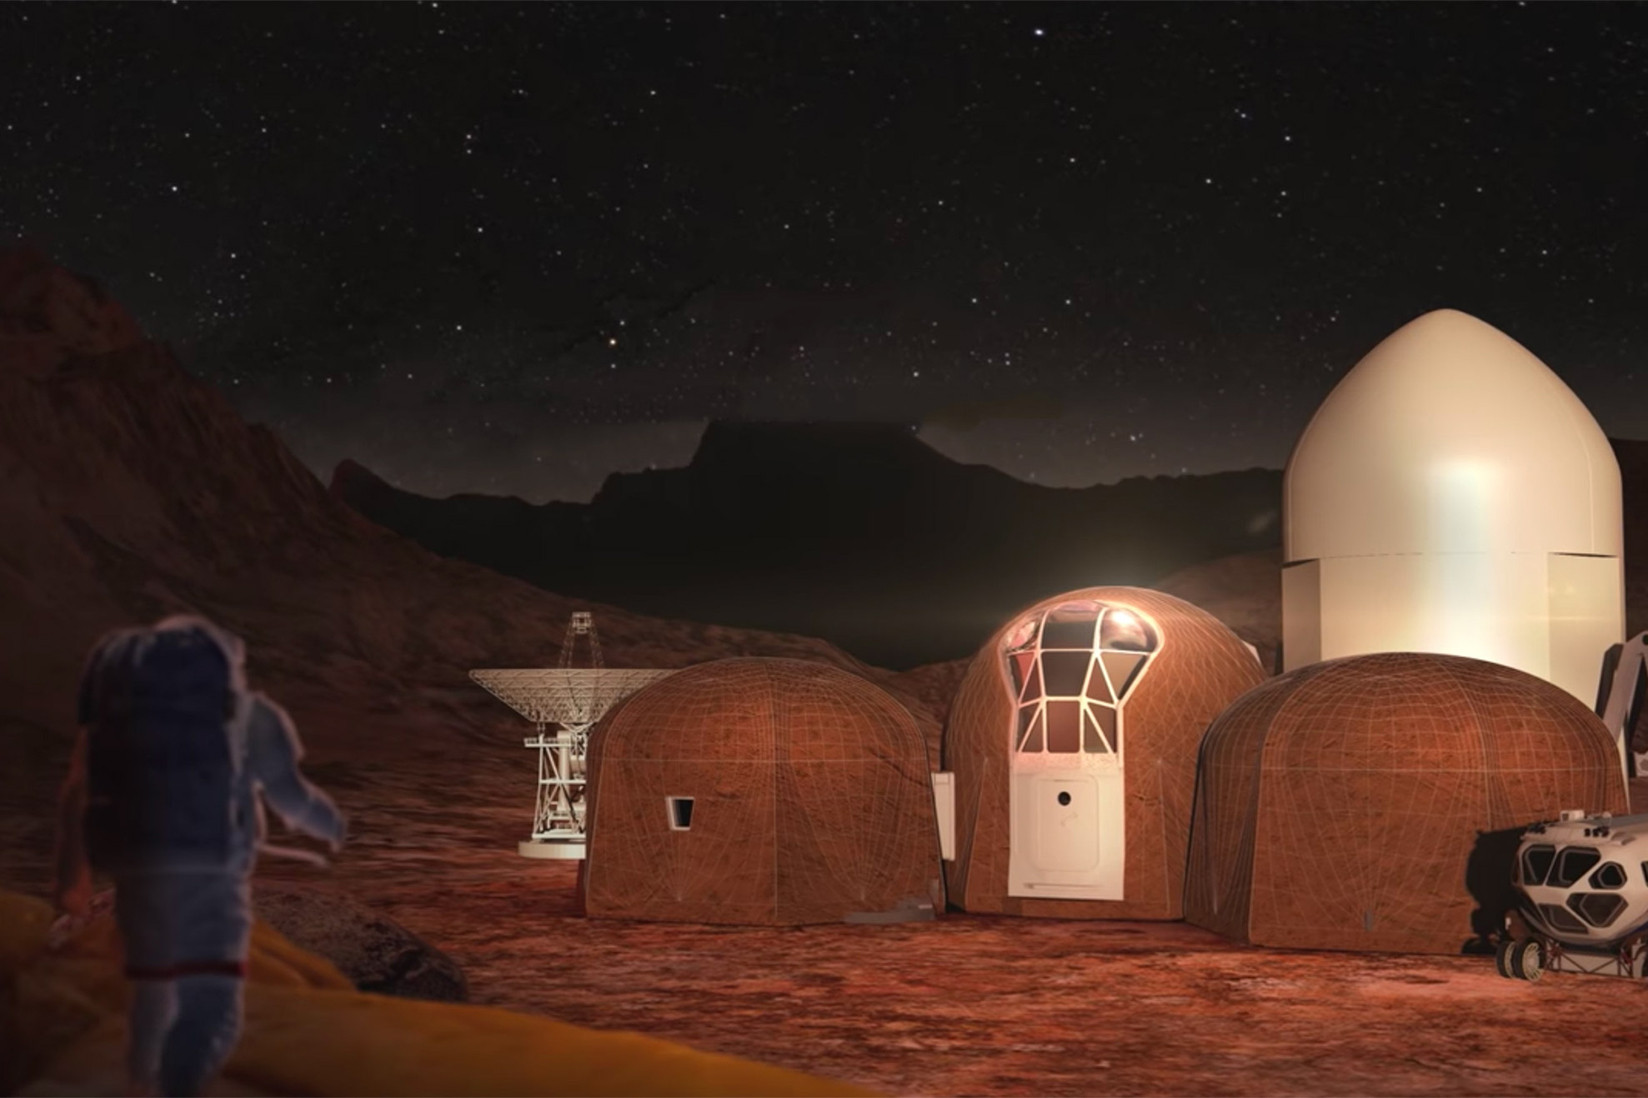 nasa-3d-printed-mars-habitat-competition-winners-1